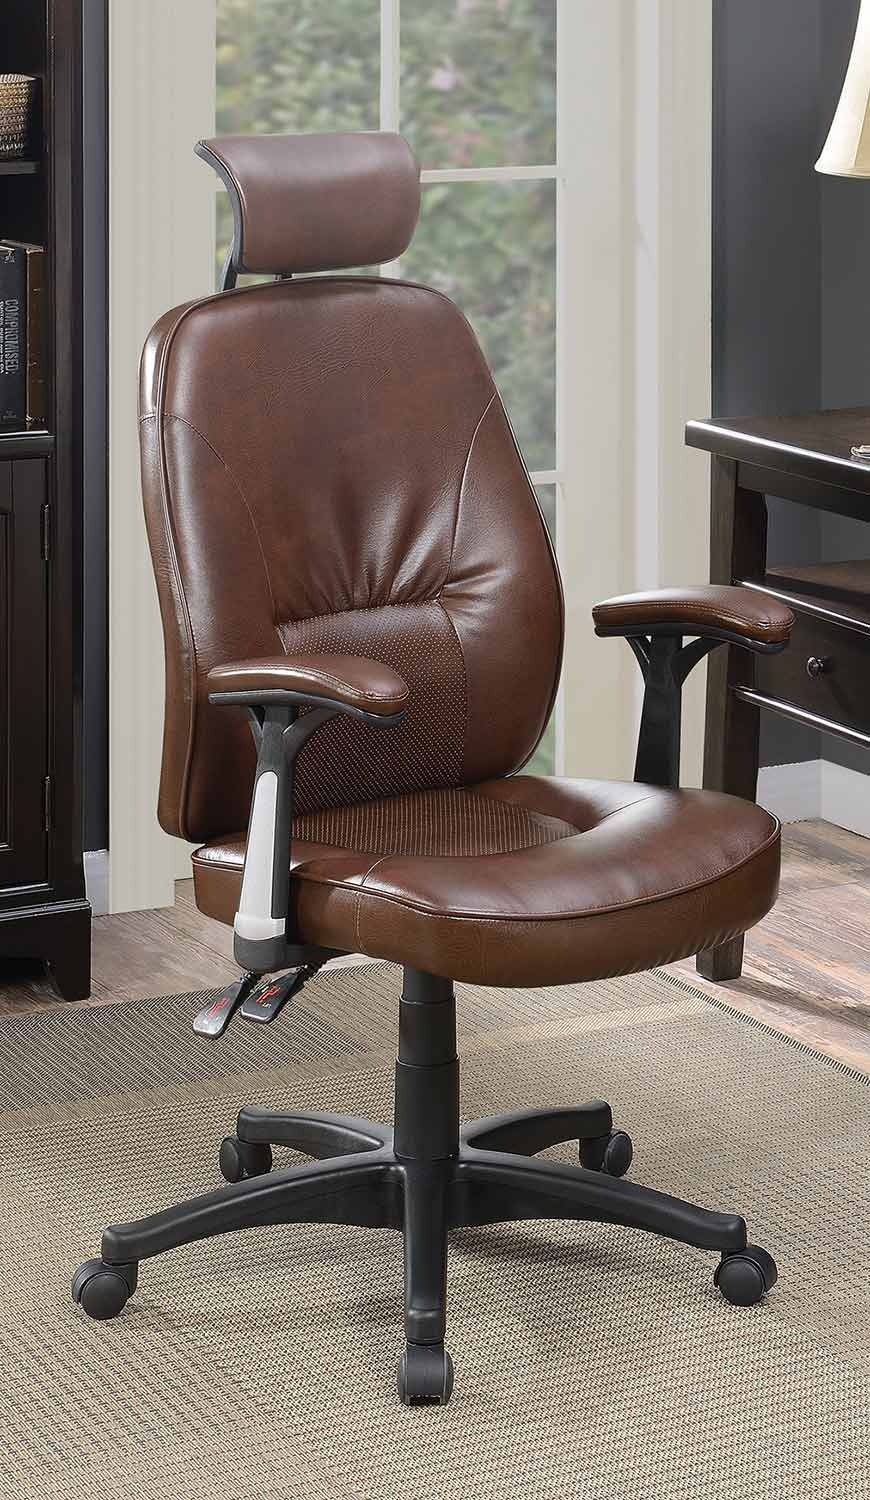 Coaster 881052 Office Chair - Brown